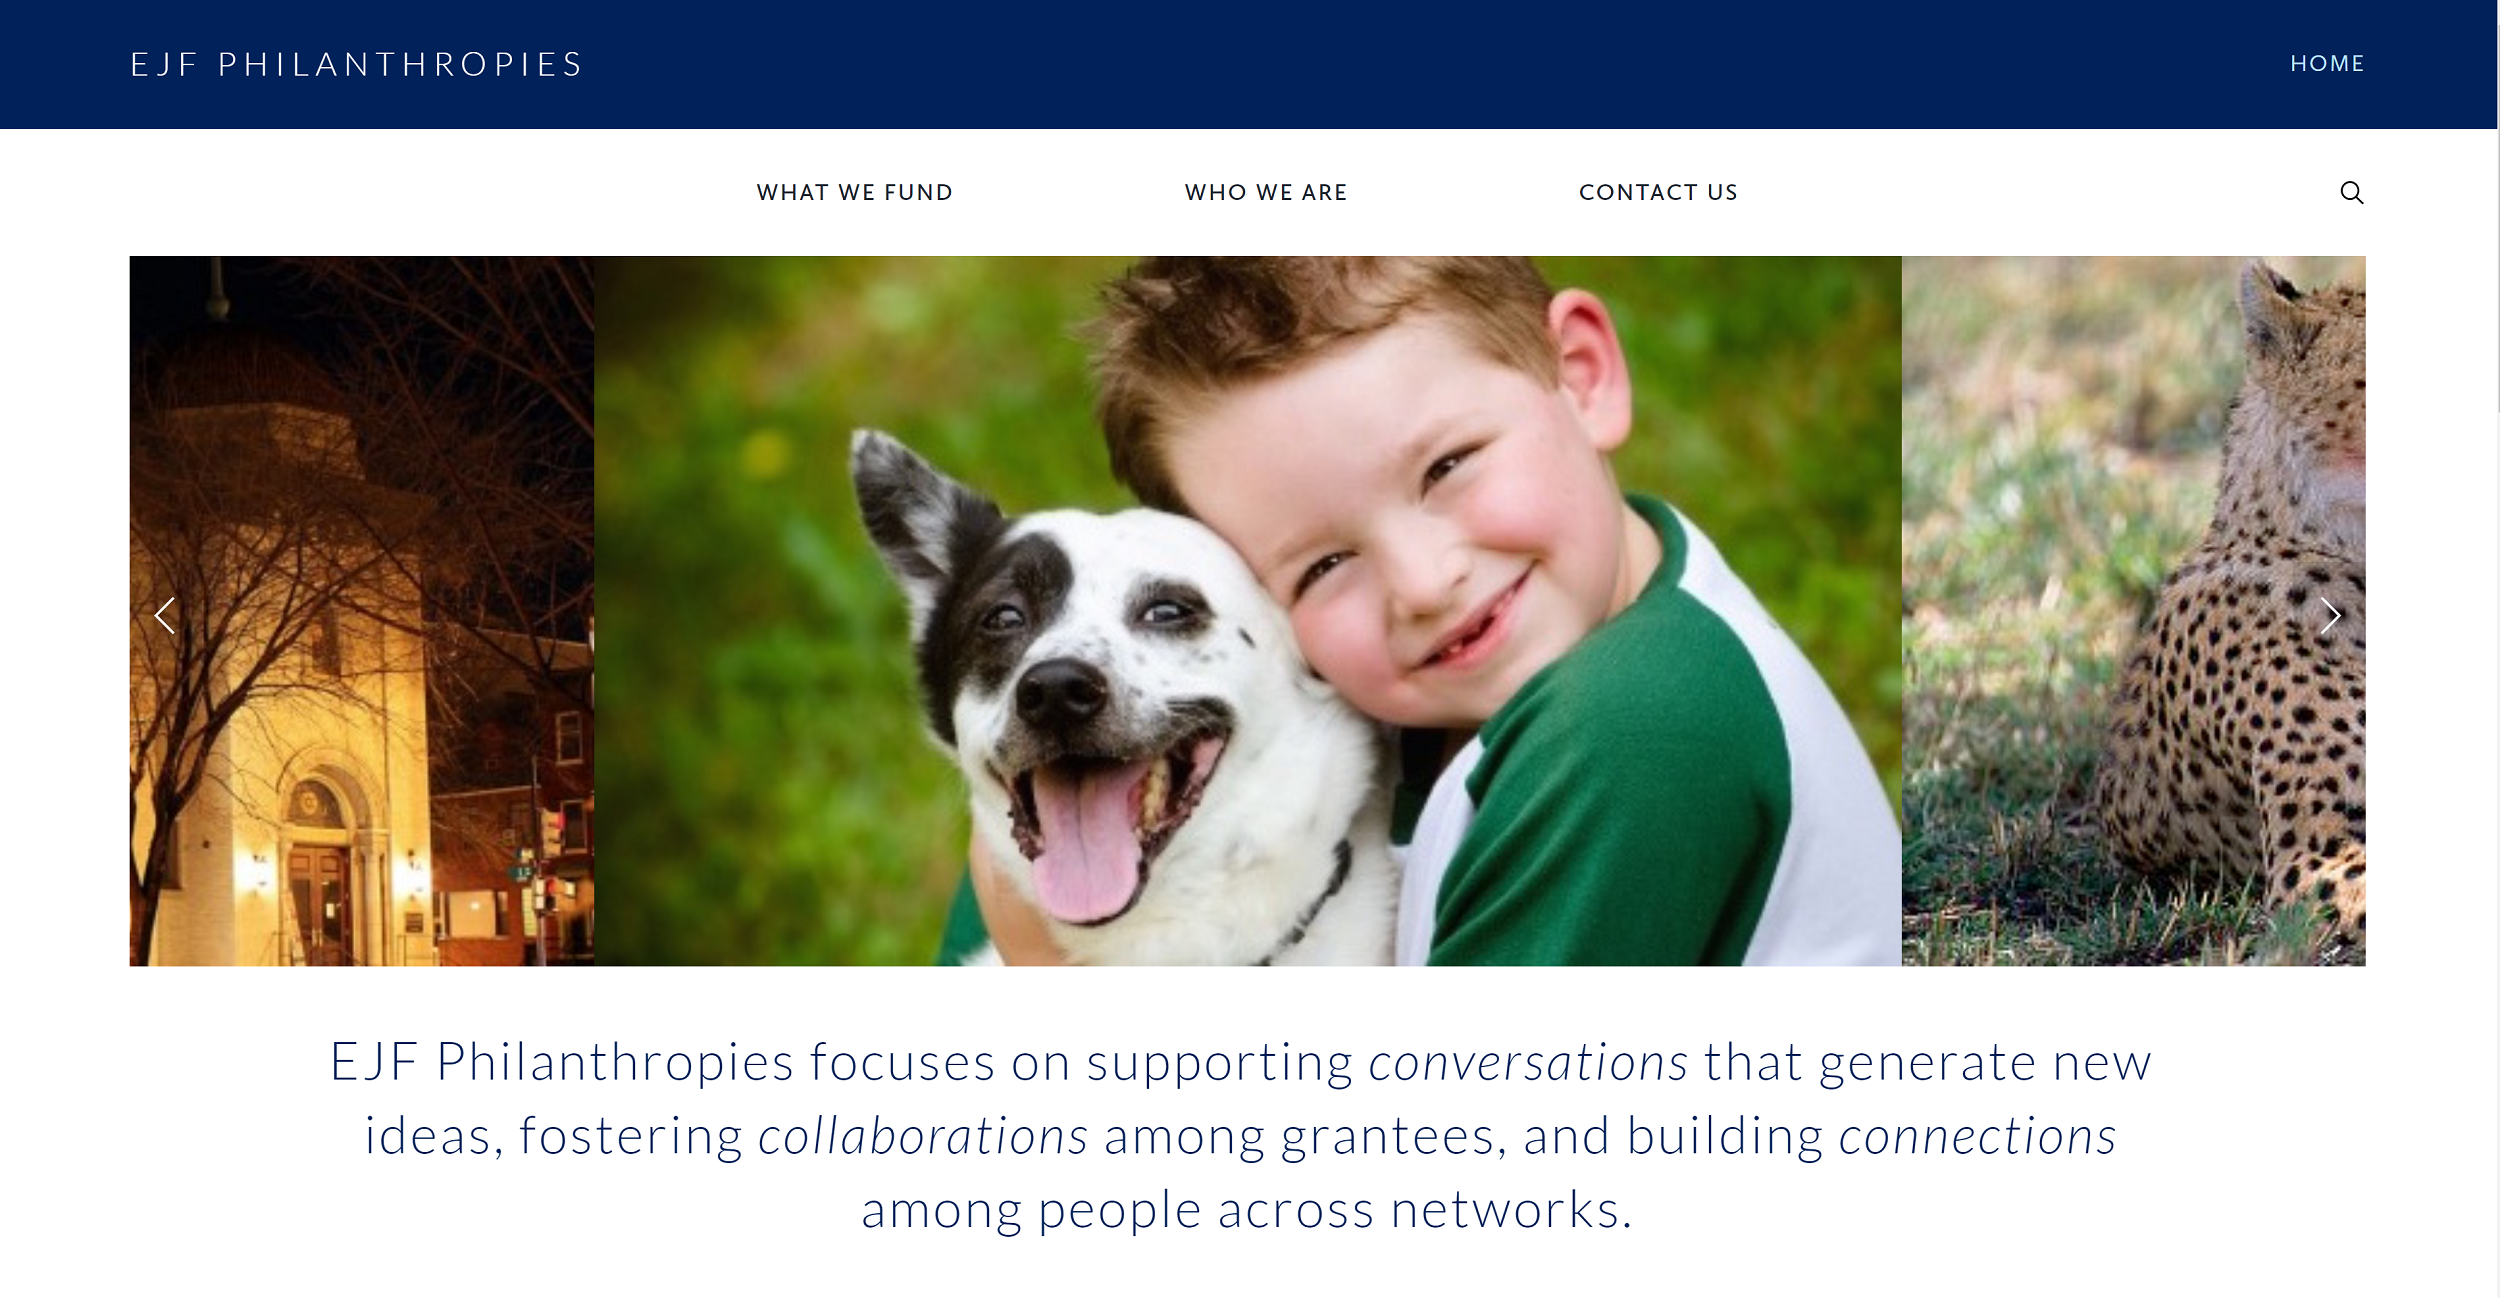 EJF Philanthropies Squarespace Website designed by  Belinda Lee Briggs